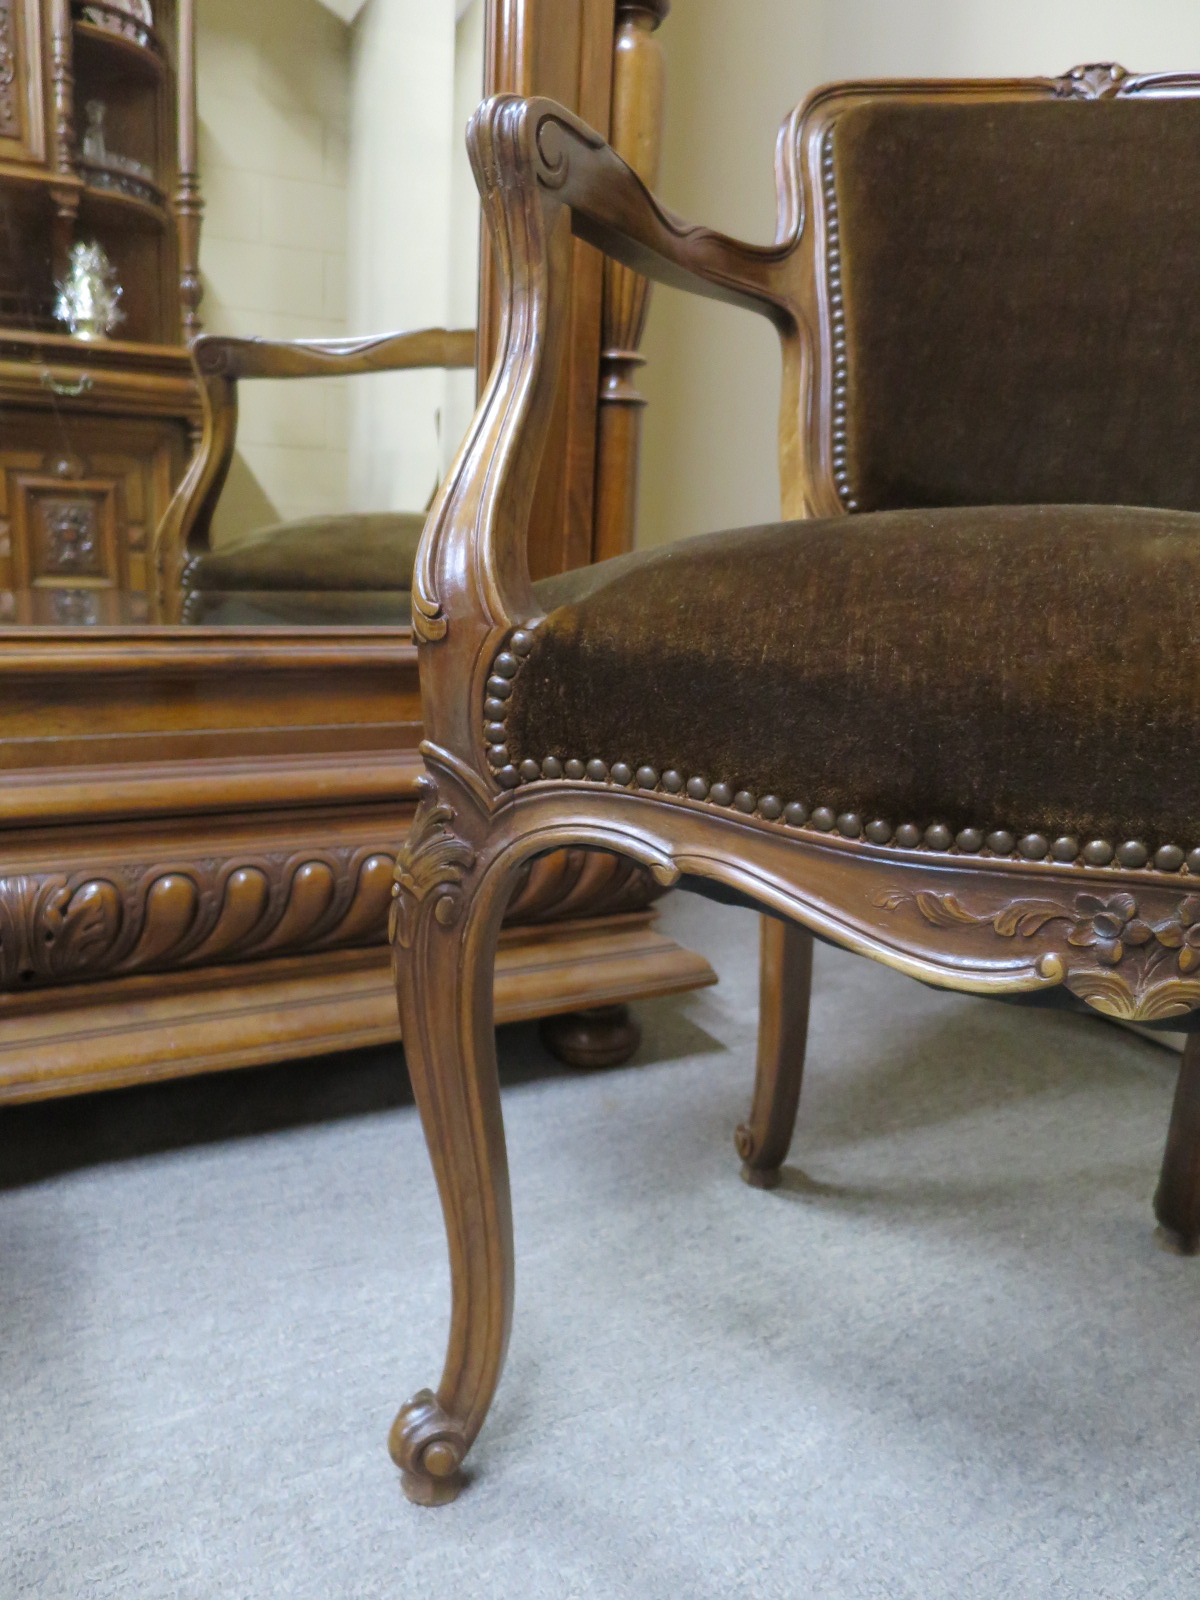 French Walnut Desk Chair, c.1900